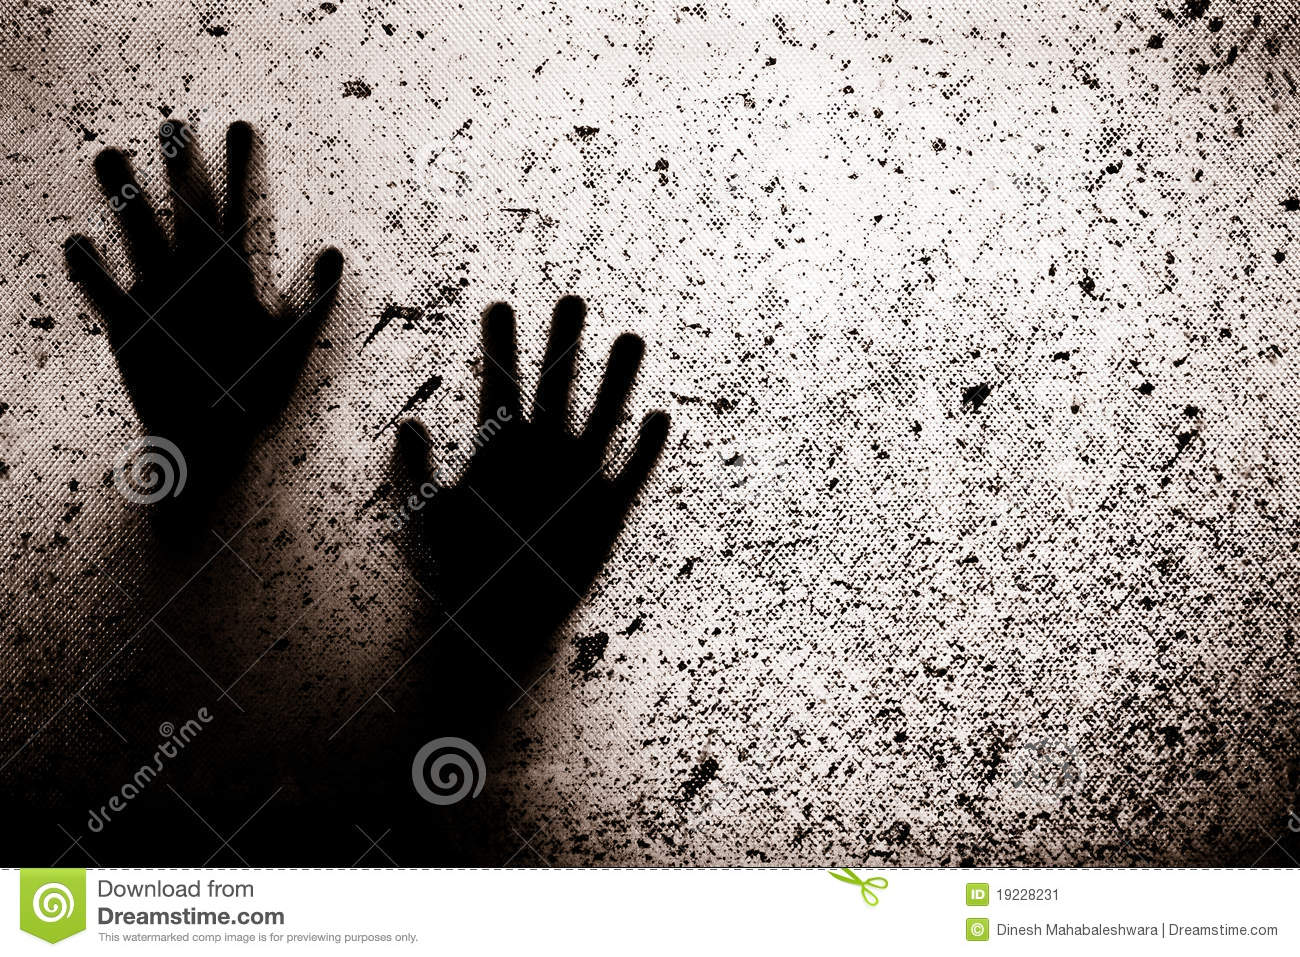 1000  ideas about Creepy Hand on Pinterest | Giant spider ...